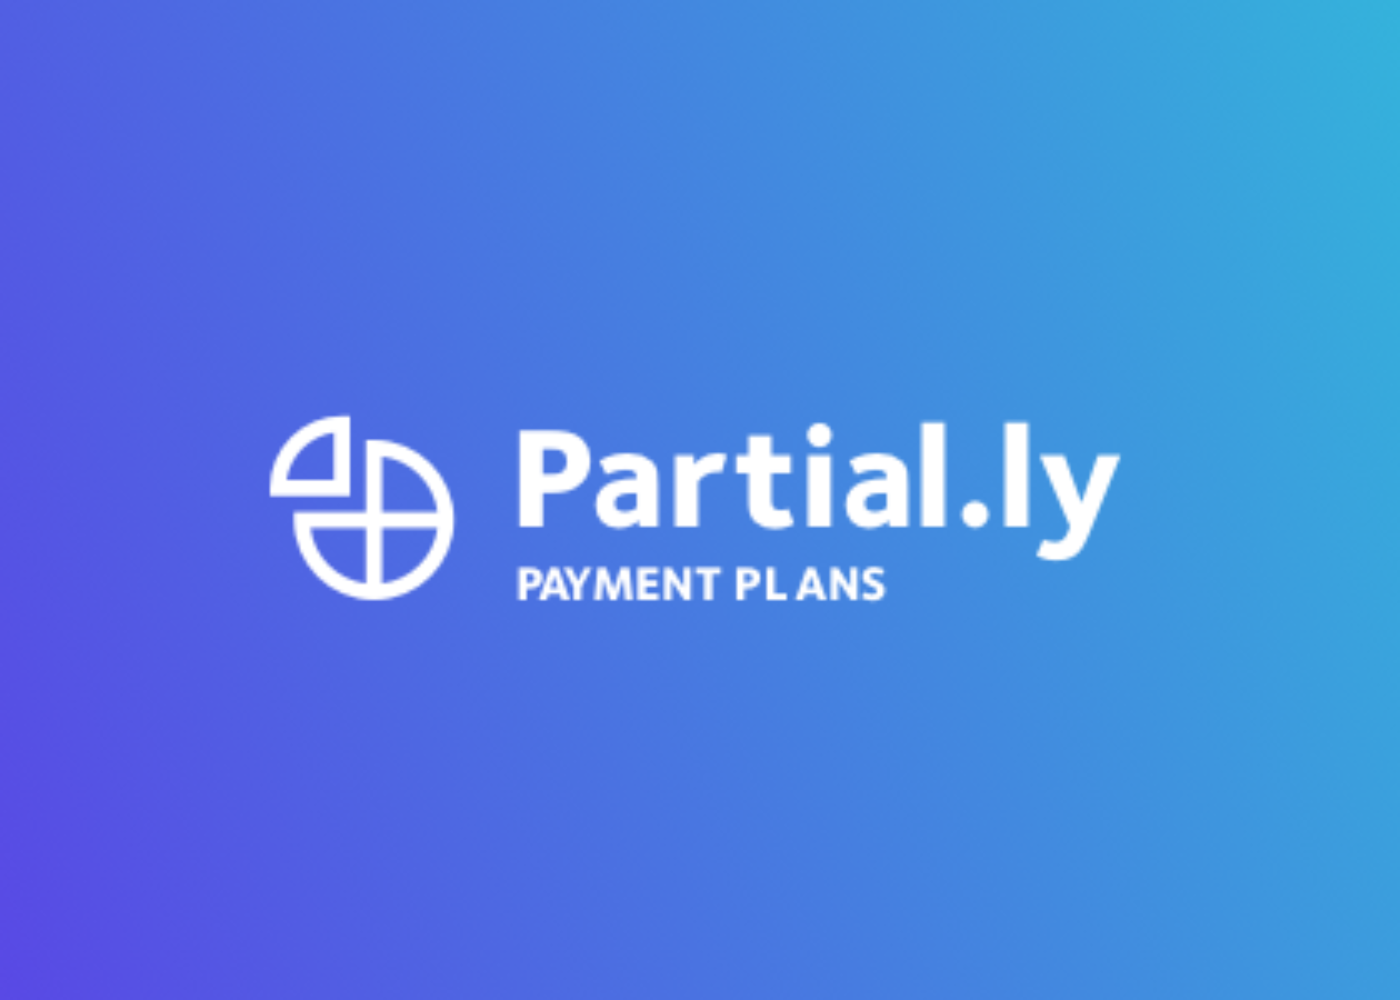 Partial.ly